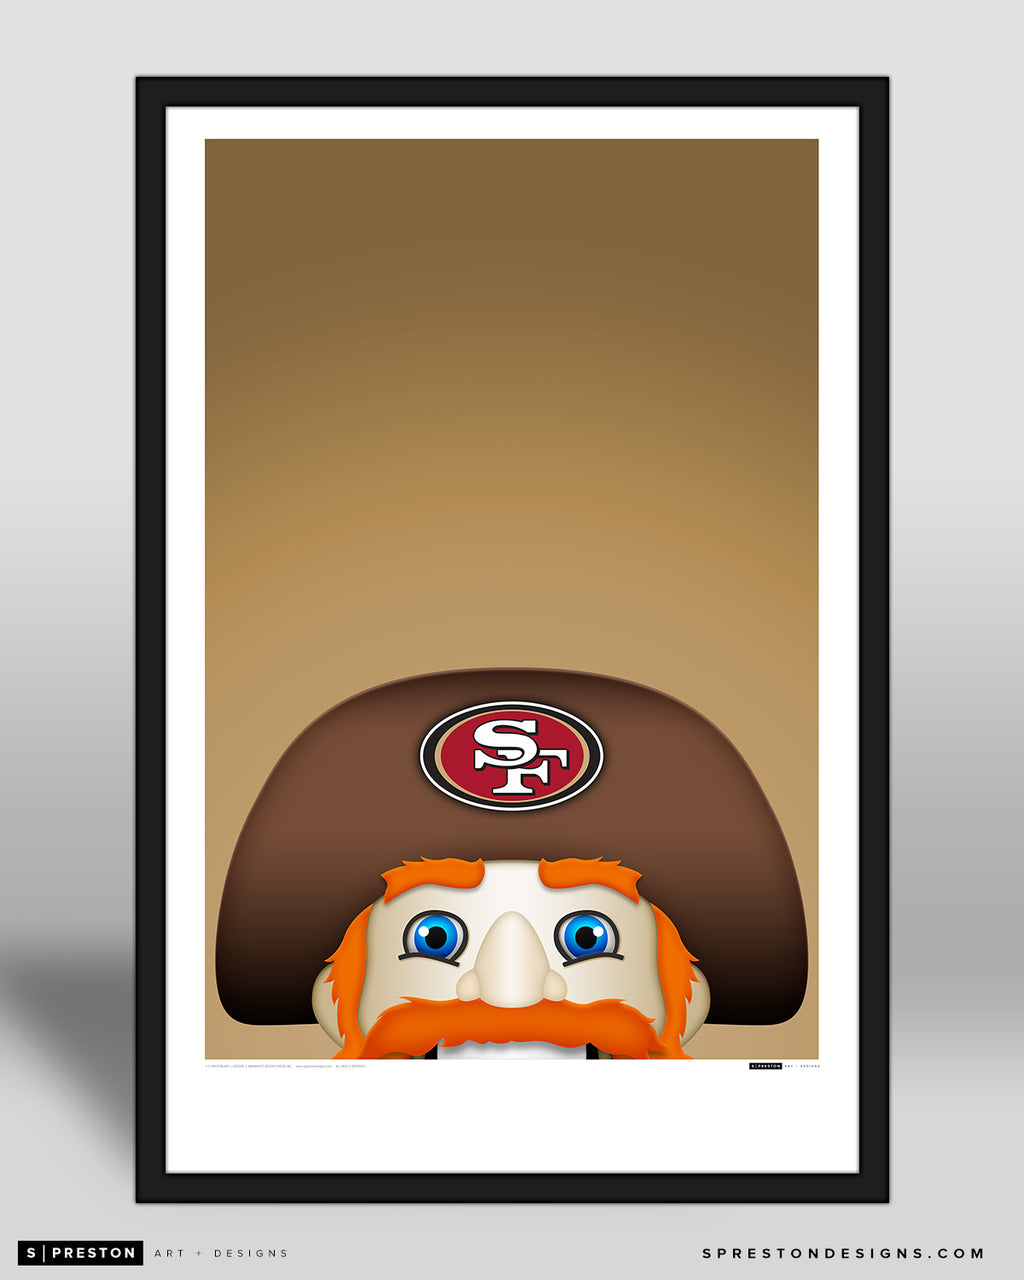 Minimalist Sourdough Sam Art Poster San Francisco 49ers Mascot - S. Preston